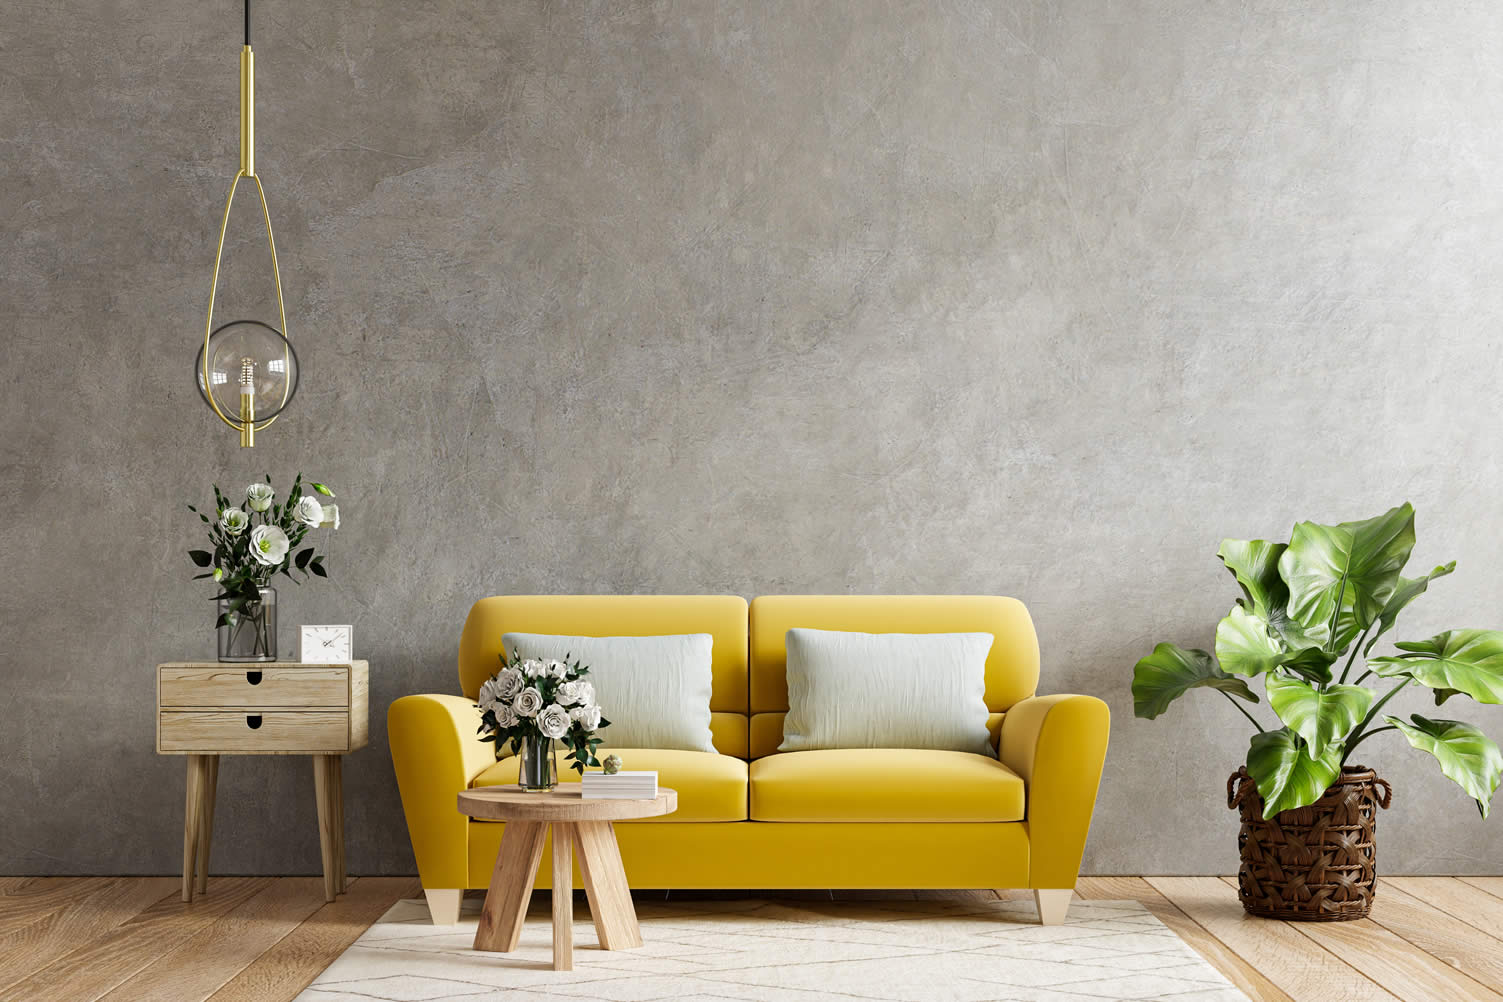 essential pieces of furniture you need in your living room